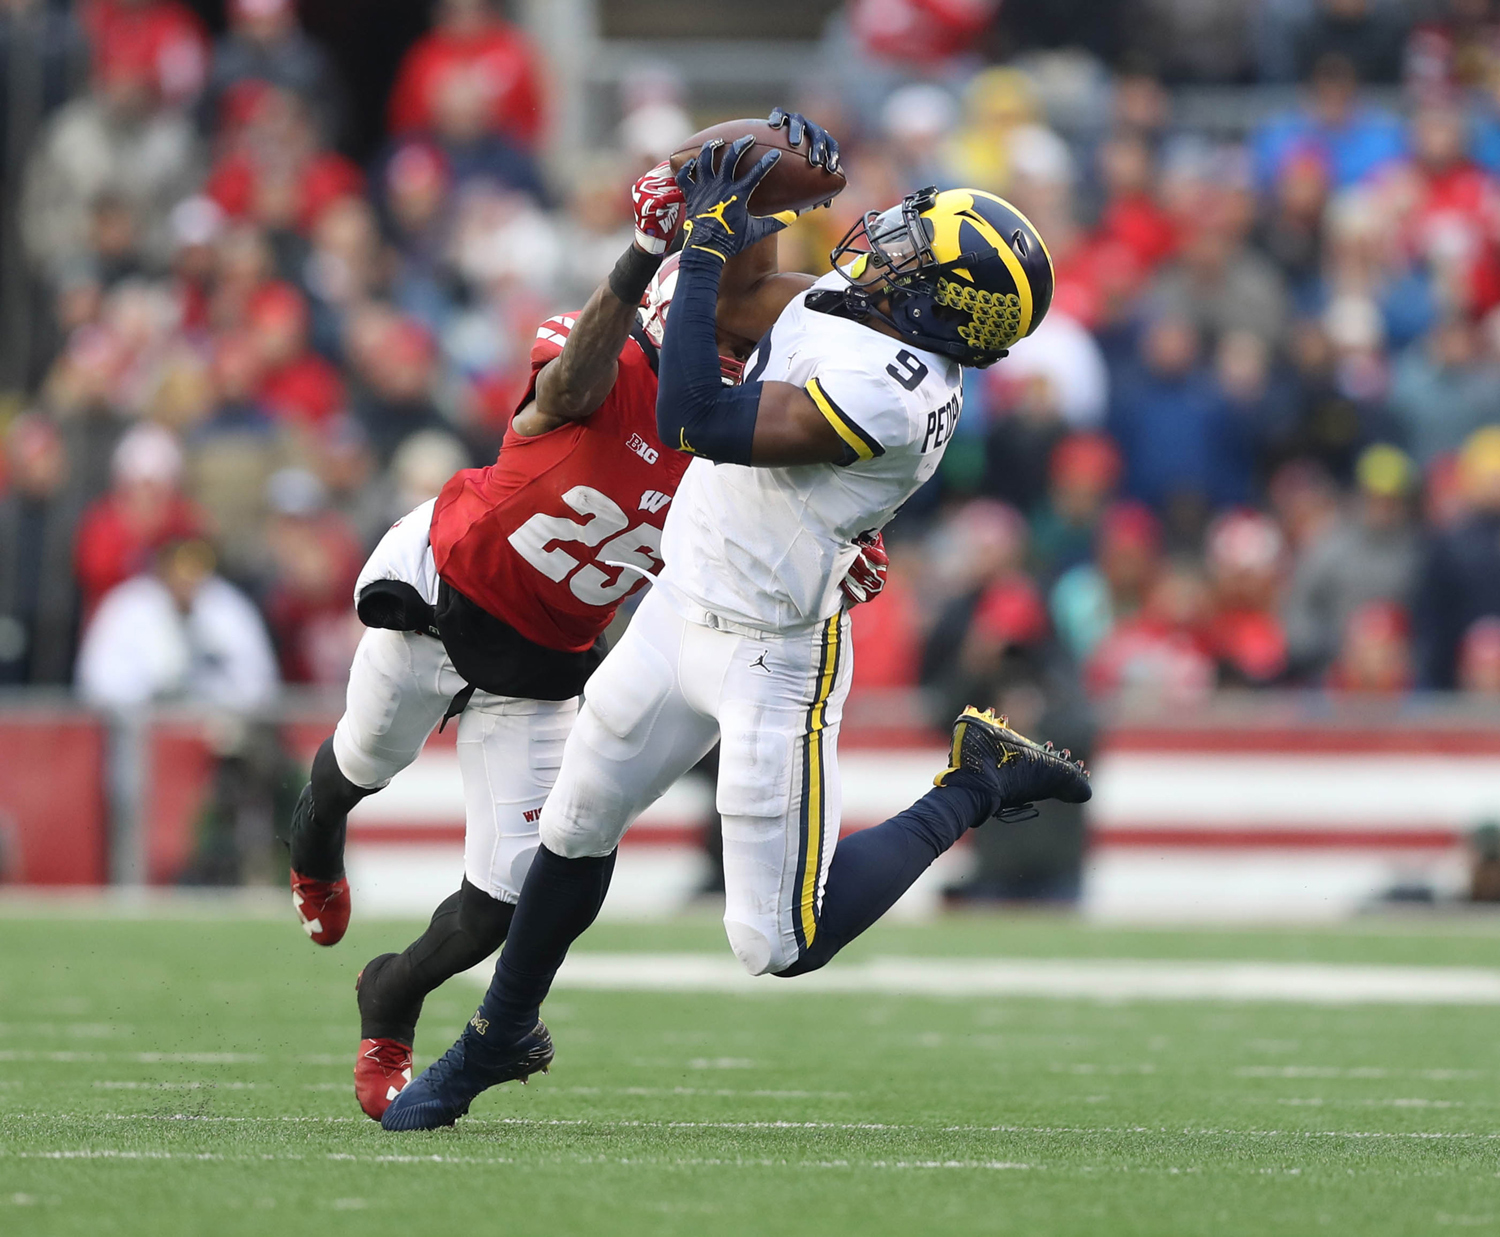 Michigan's Donovan Peoples-Jones makes a catch against Wisconsin during second quarter action Nov. 18, 2017, at Camp Randall Stadium in Madison, Wisconsin. Wisconsin won 24-10.  Kirthmon F. Dozier/Detroit Free Press/TNS Matt Freed/Pittsburgh Post-Gazette/TNS